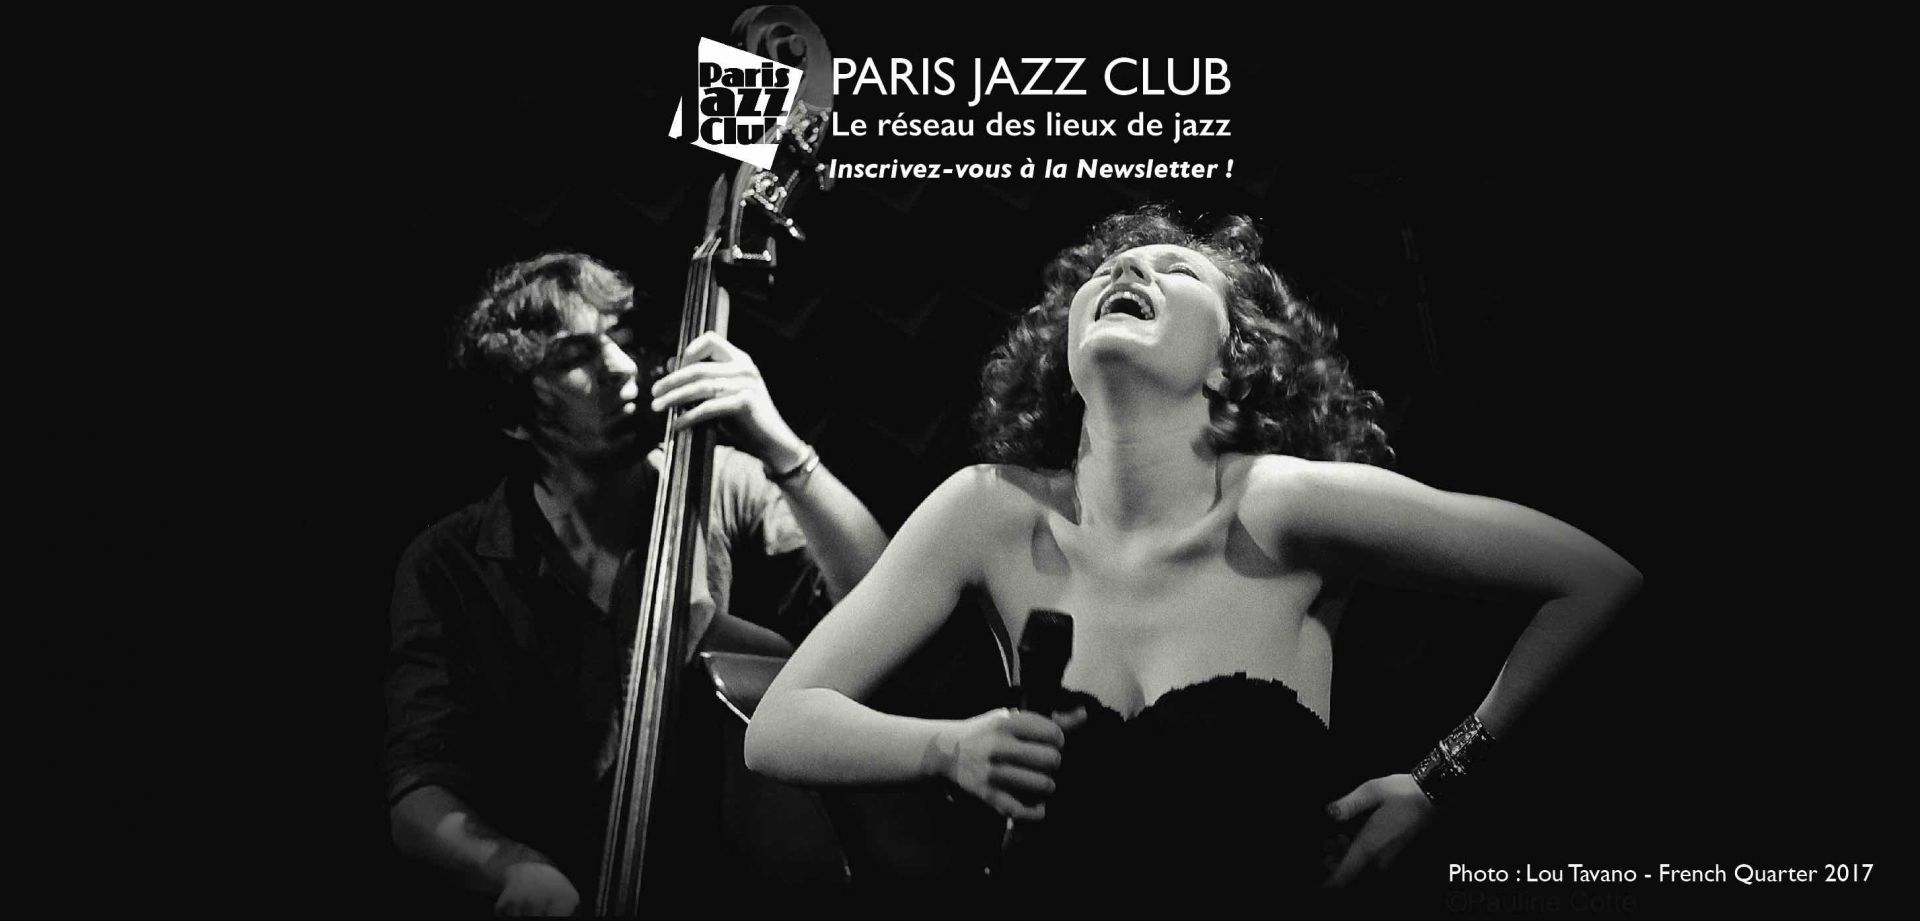 PARIS JAZZ CLUB's newsletter - 